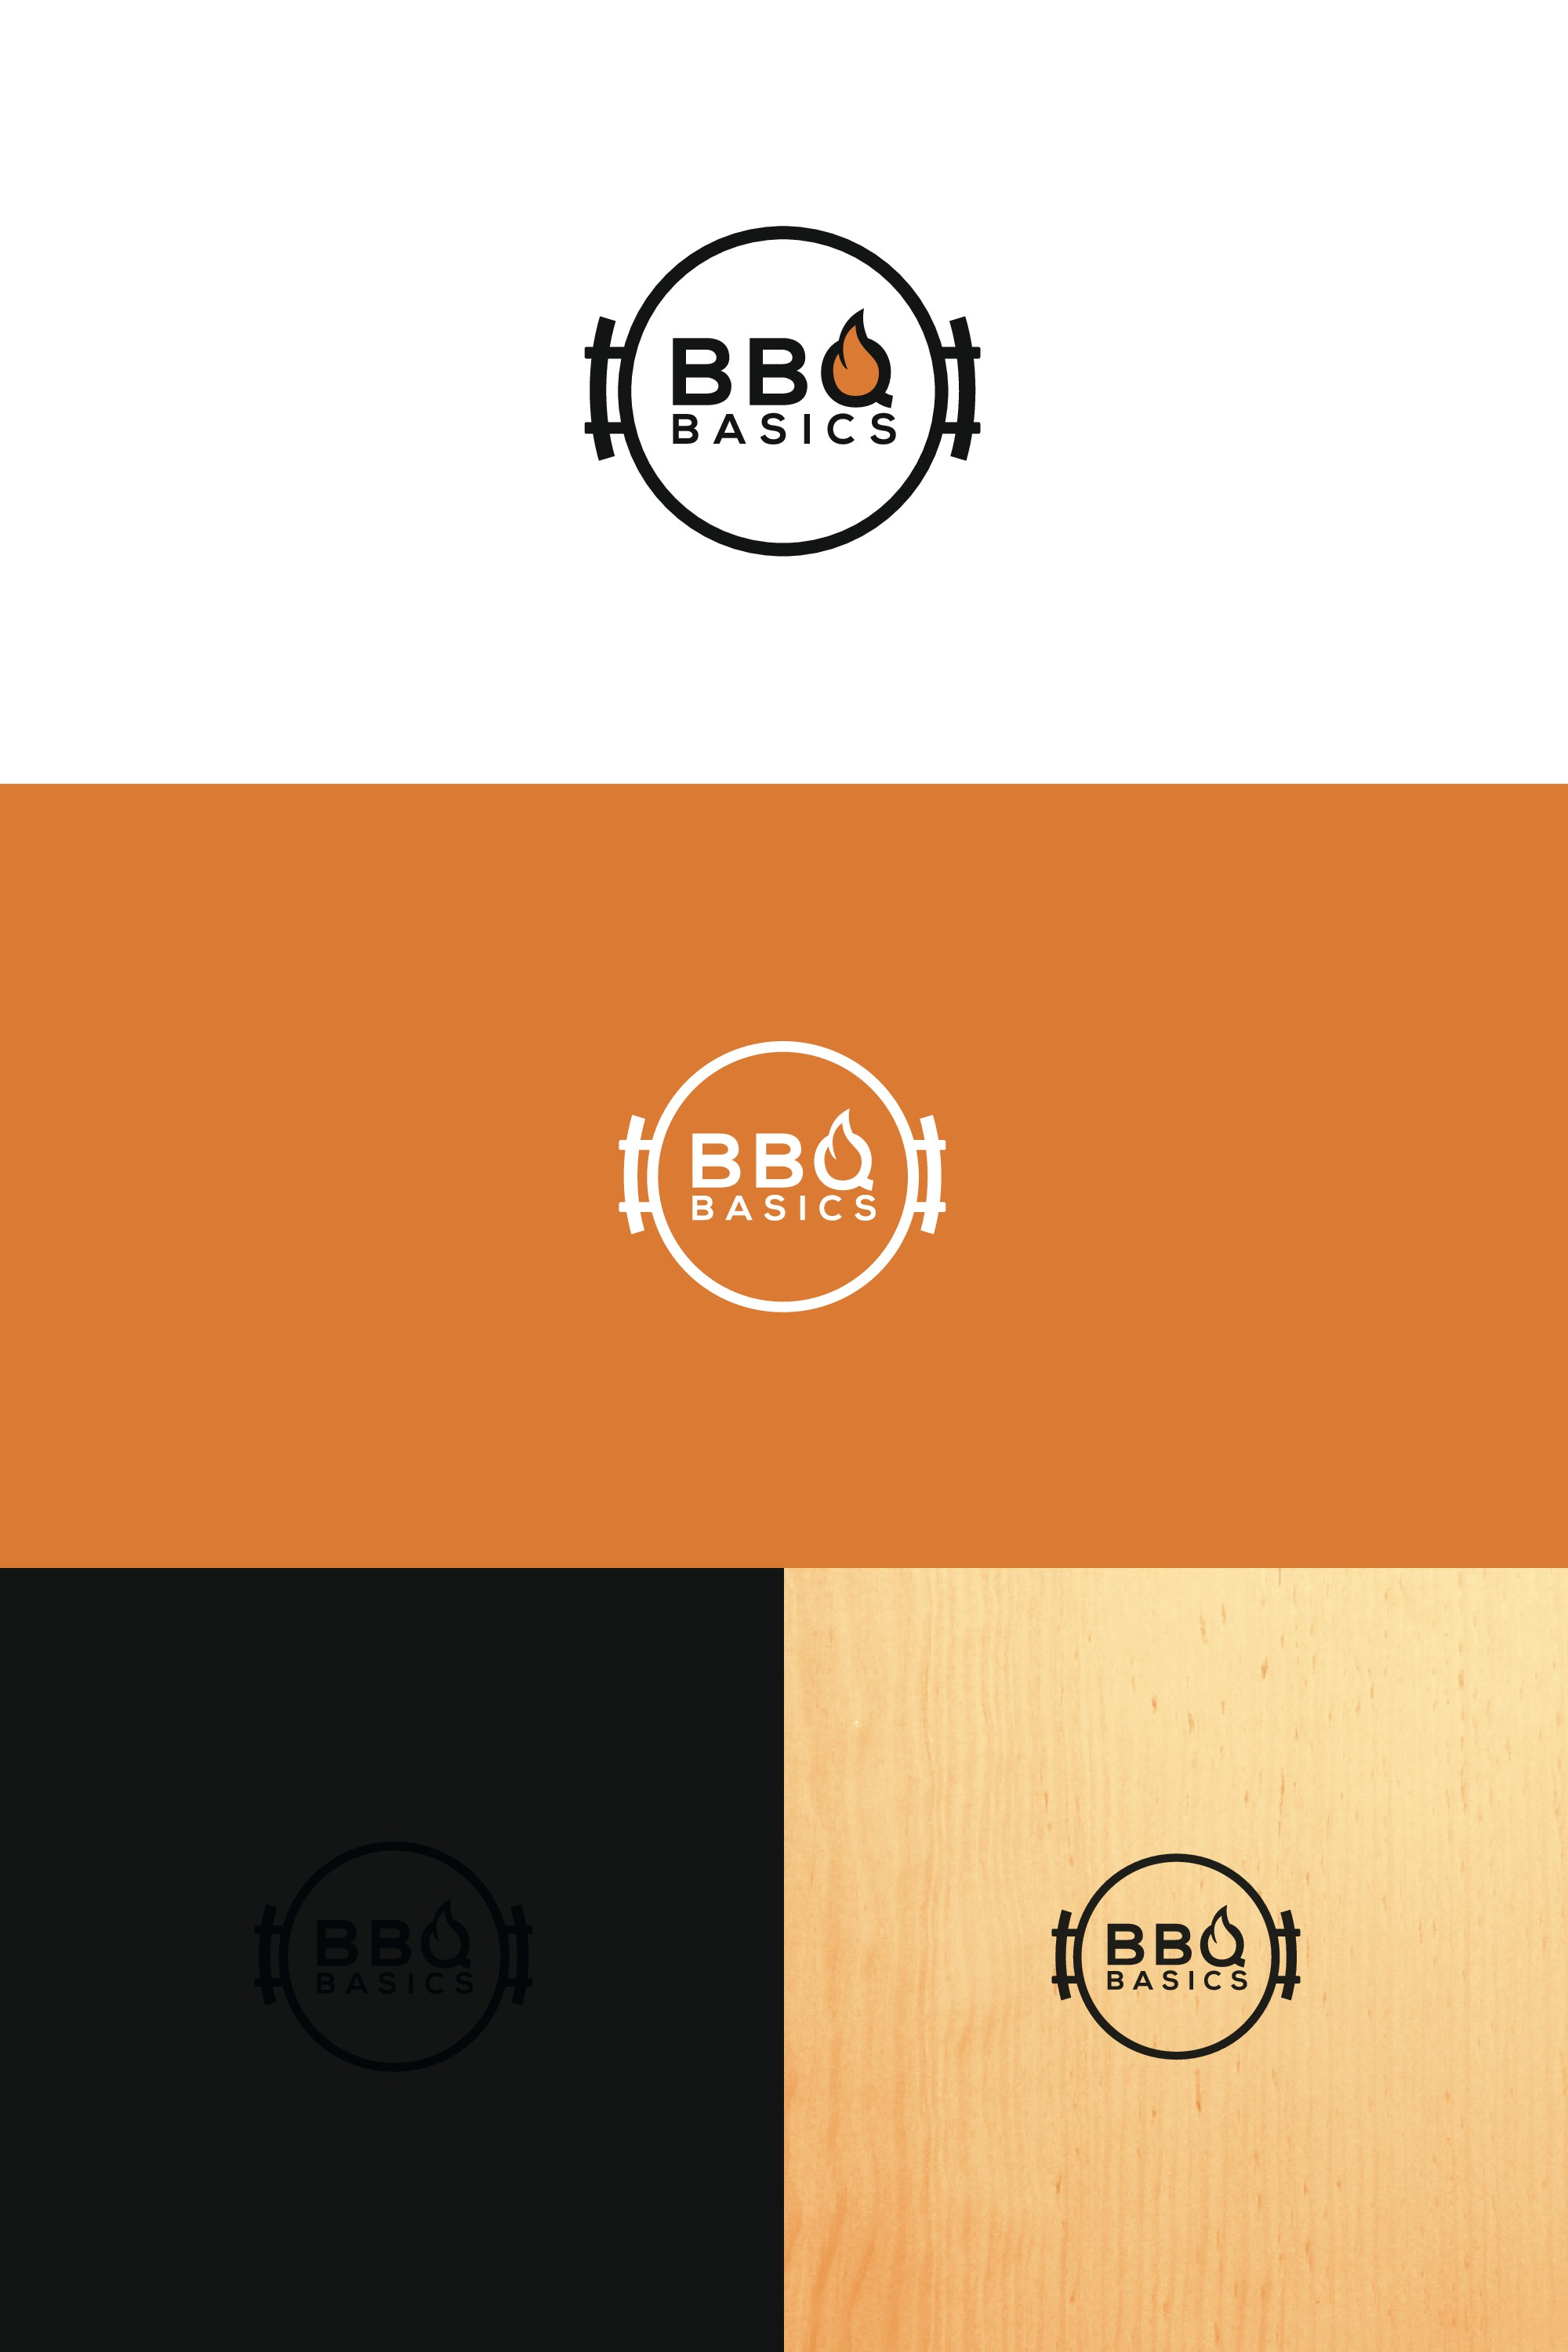 New natural wood product line needs trendy yet classic logo